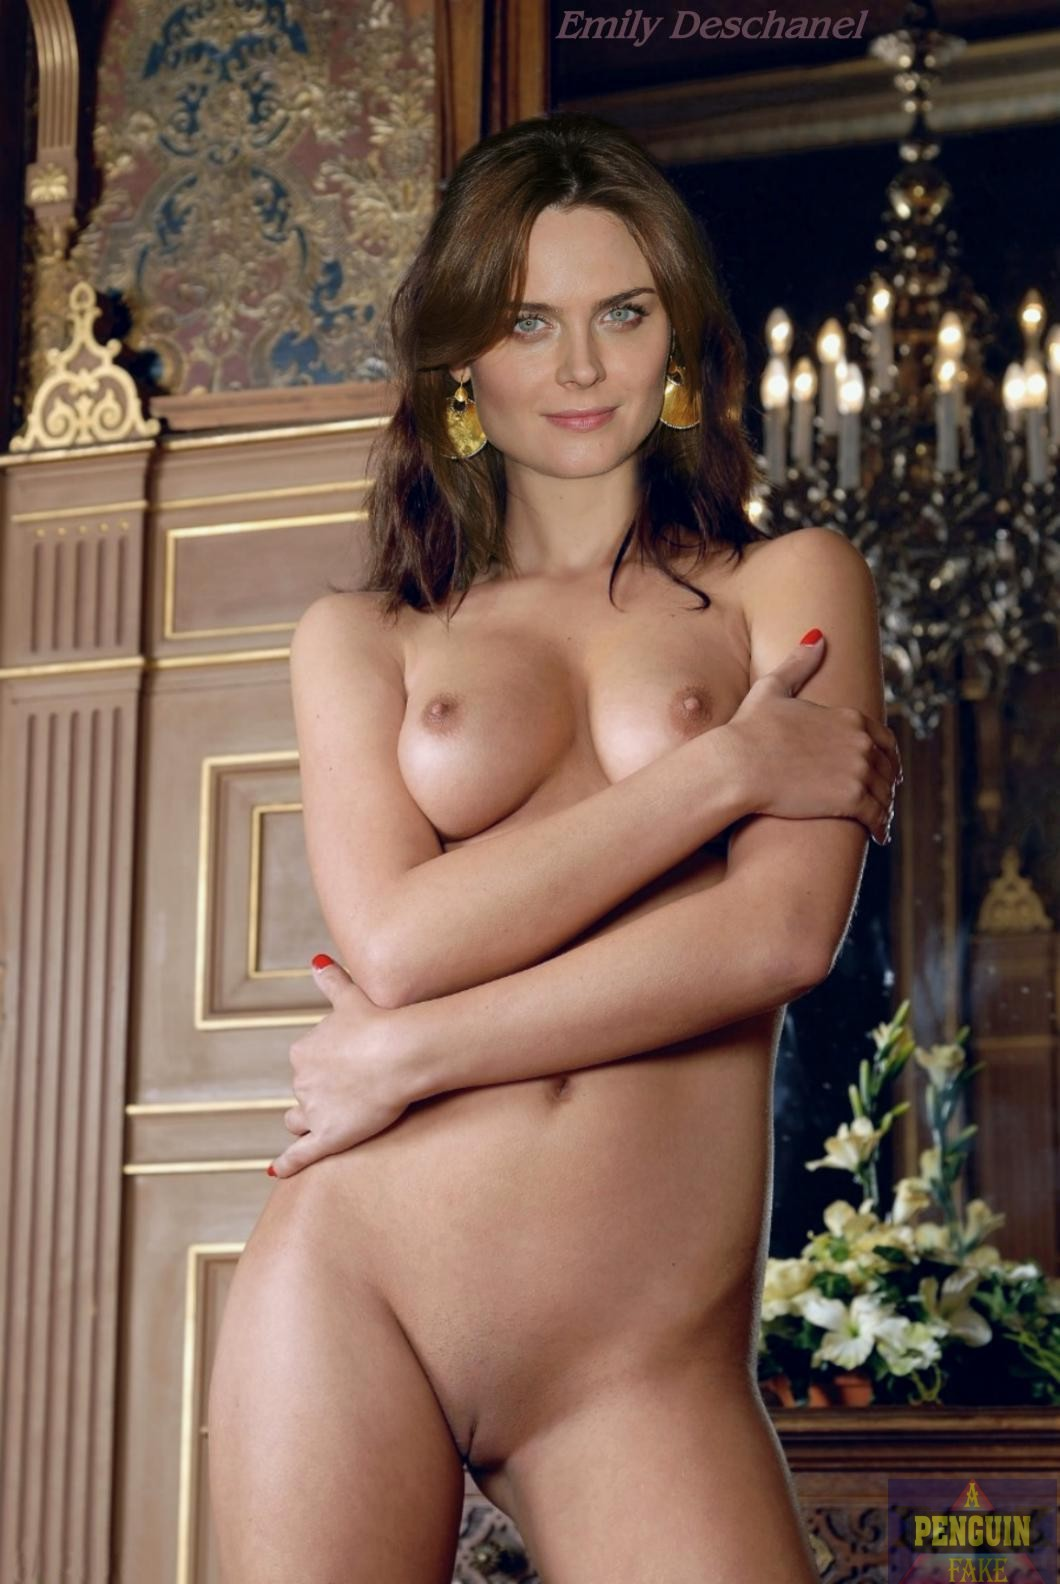 manhattan-movie-emily-deschanel-sexy